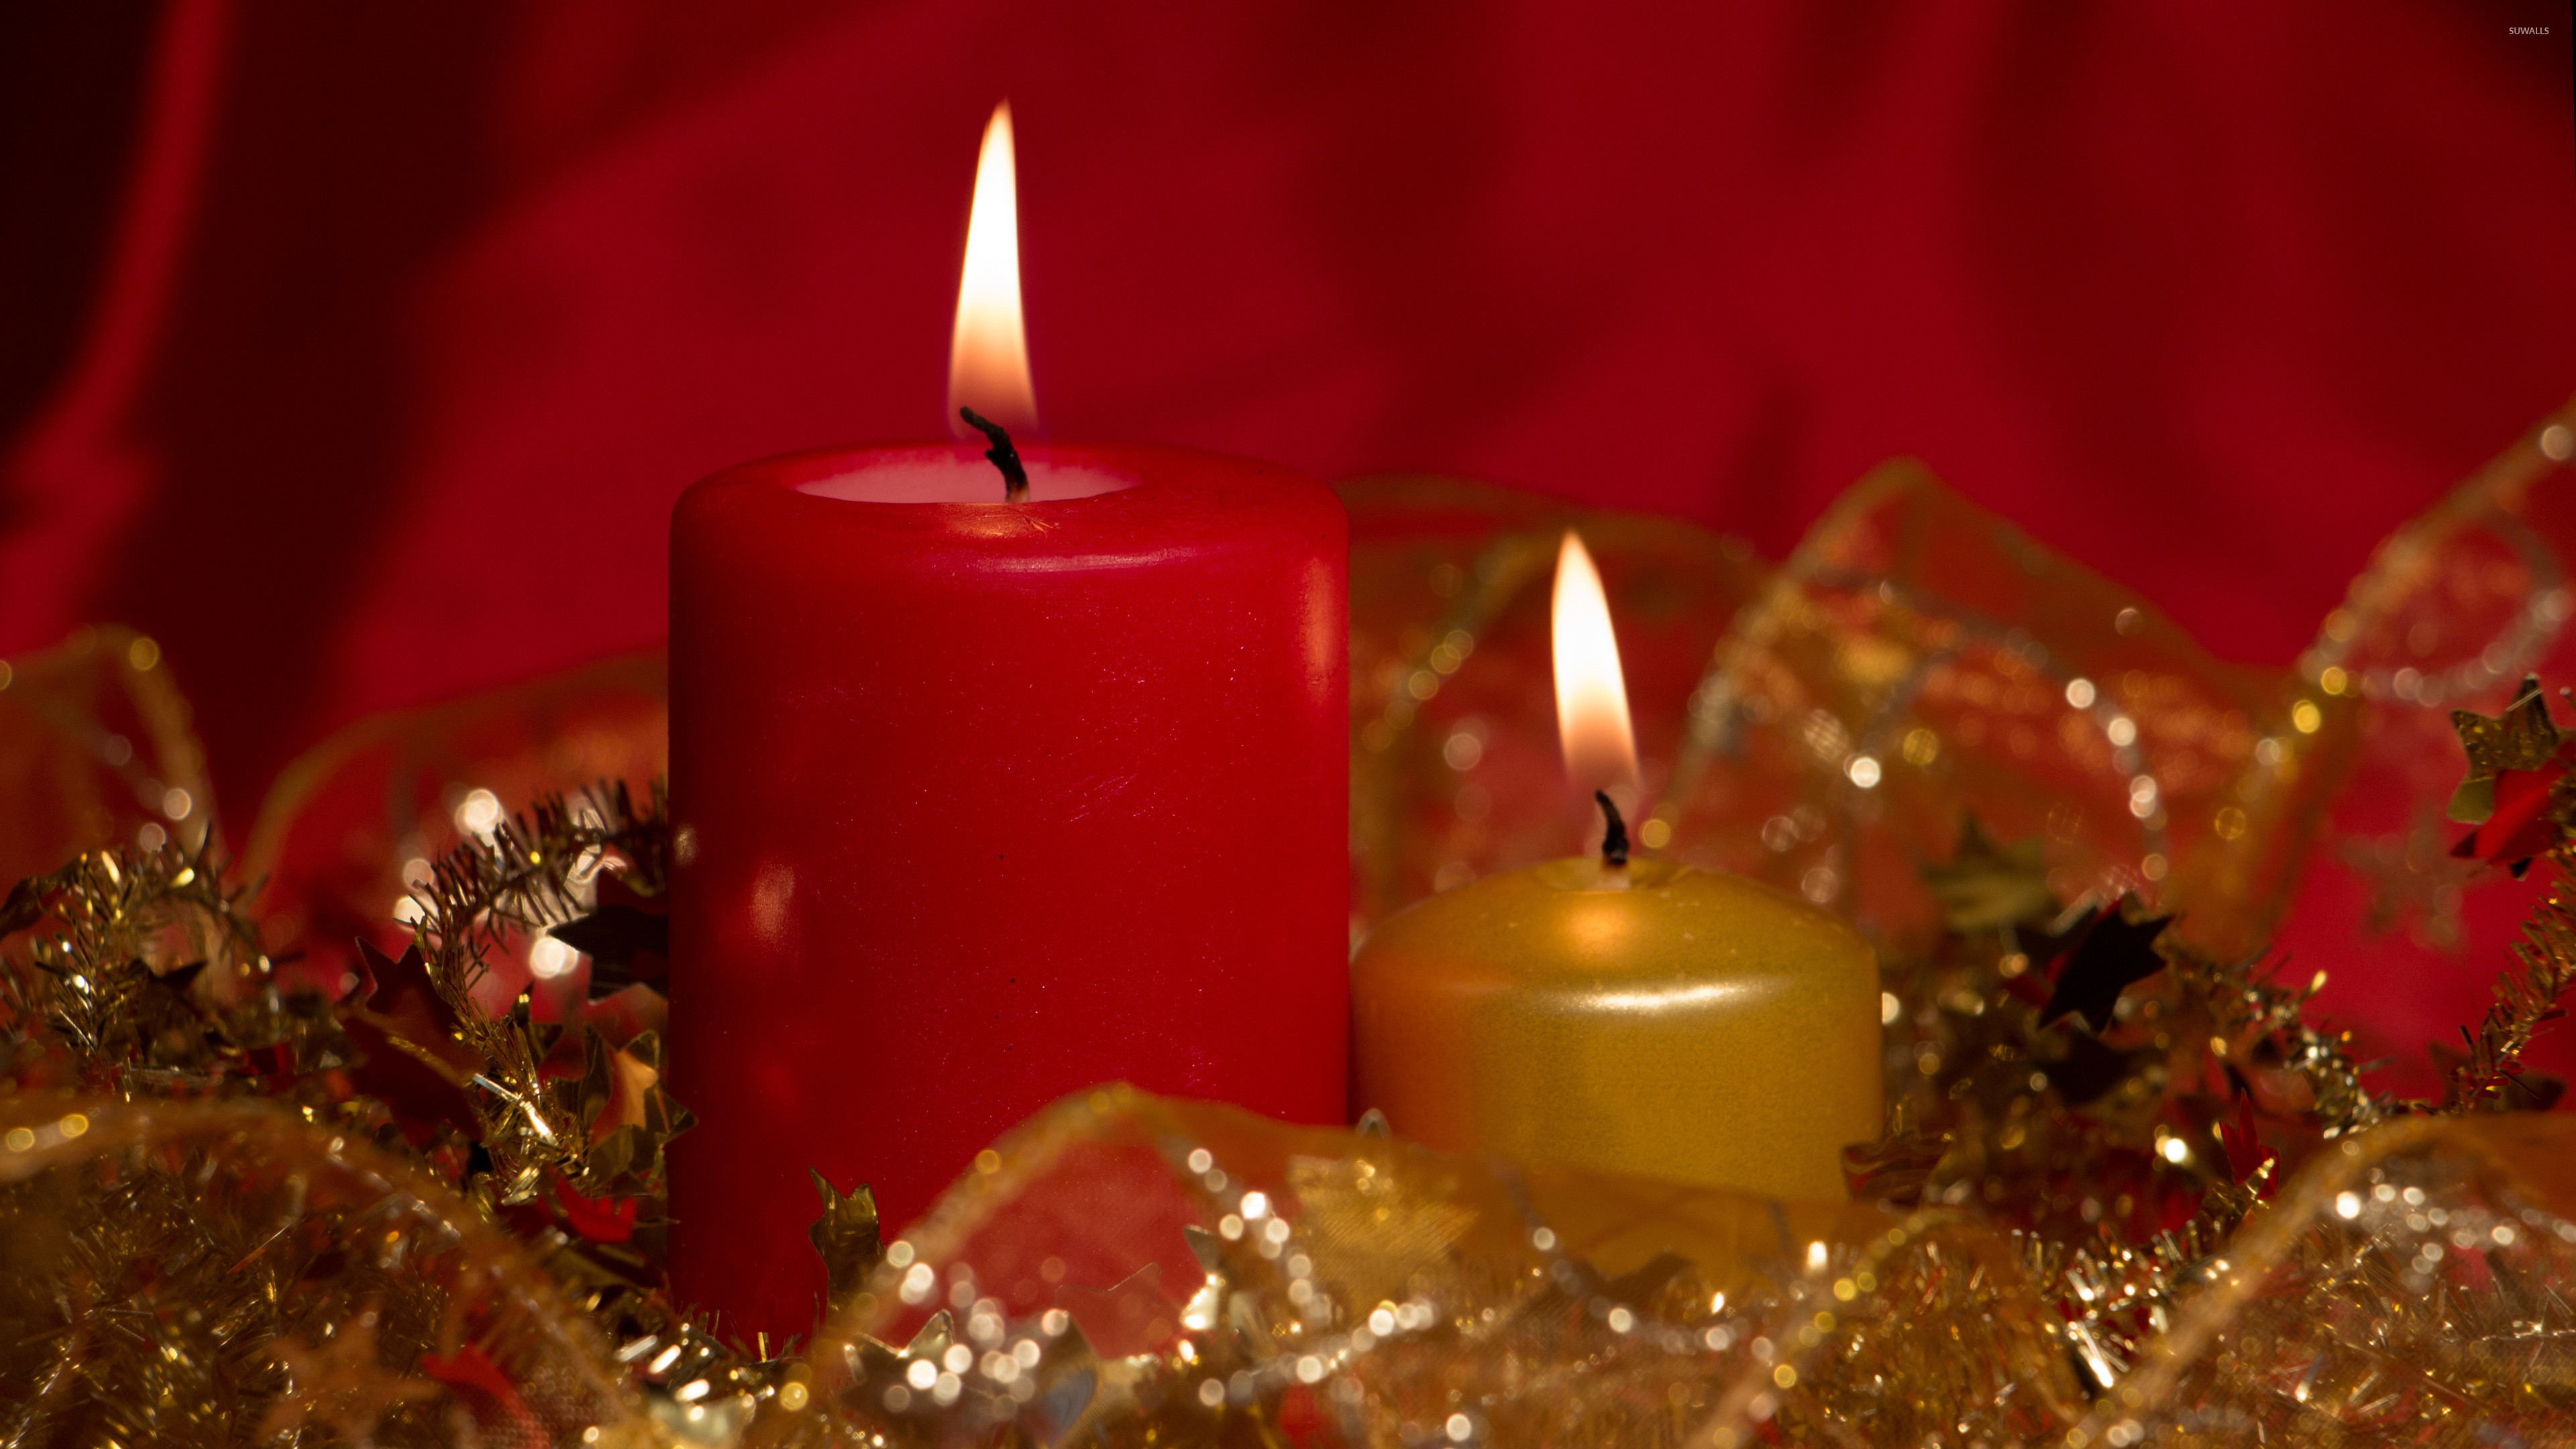 Red and golden Christmas candles wallpaper jpg